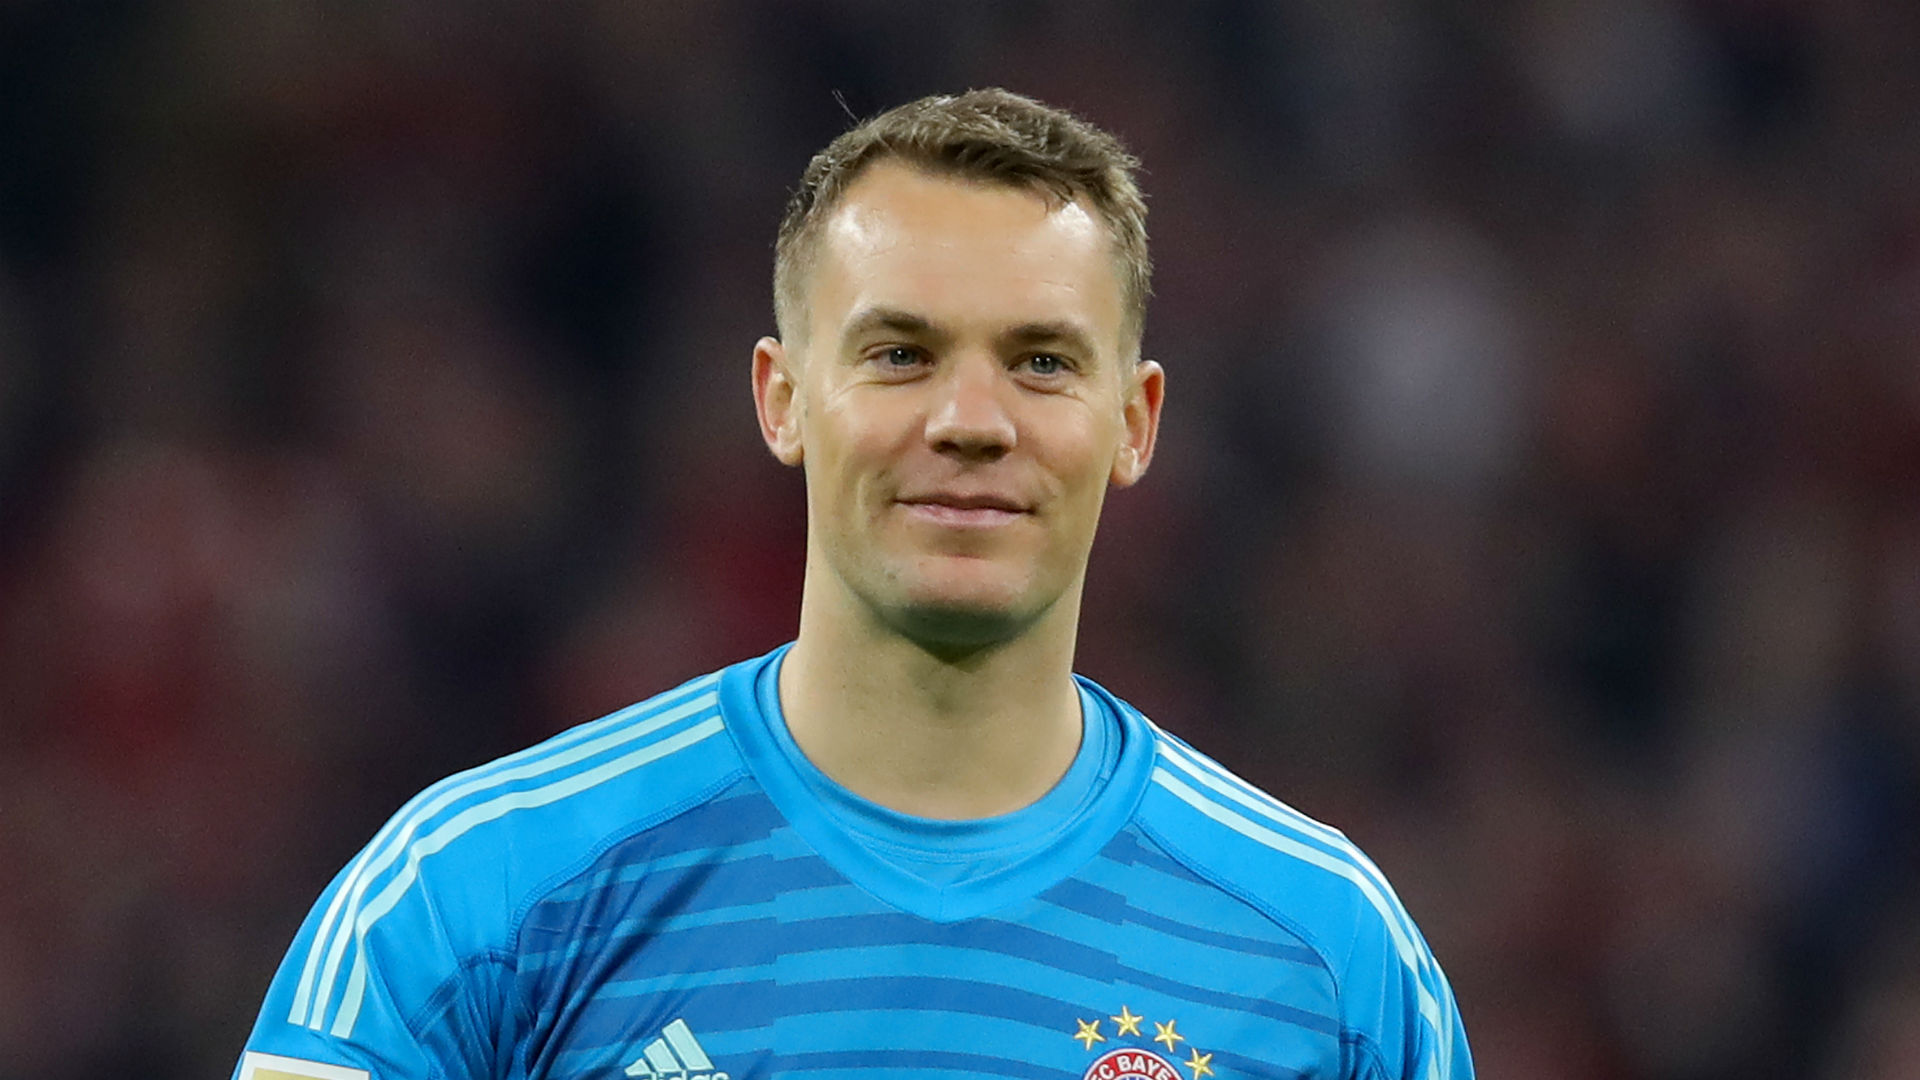 Neuer to start for Bayern in DFB-Pokal final